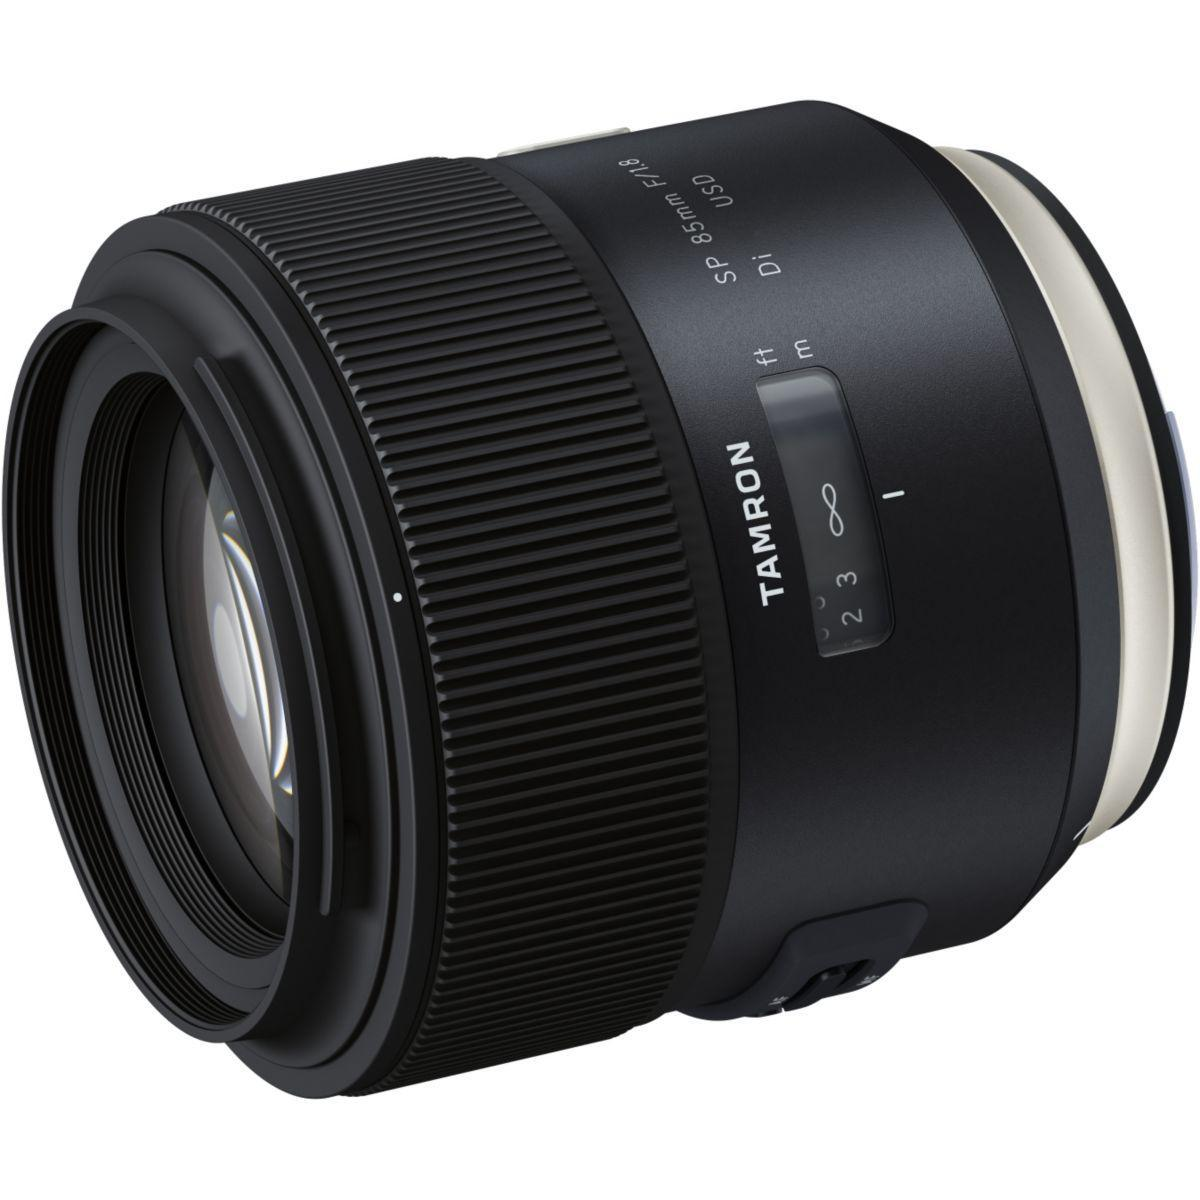 Pack promo objectif tamron sp 85mm f/1,8 di usd pour sony + console tamron tap-01 e pour sony